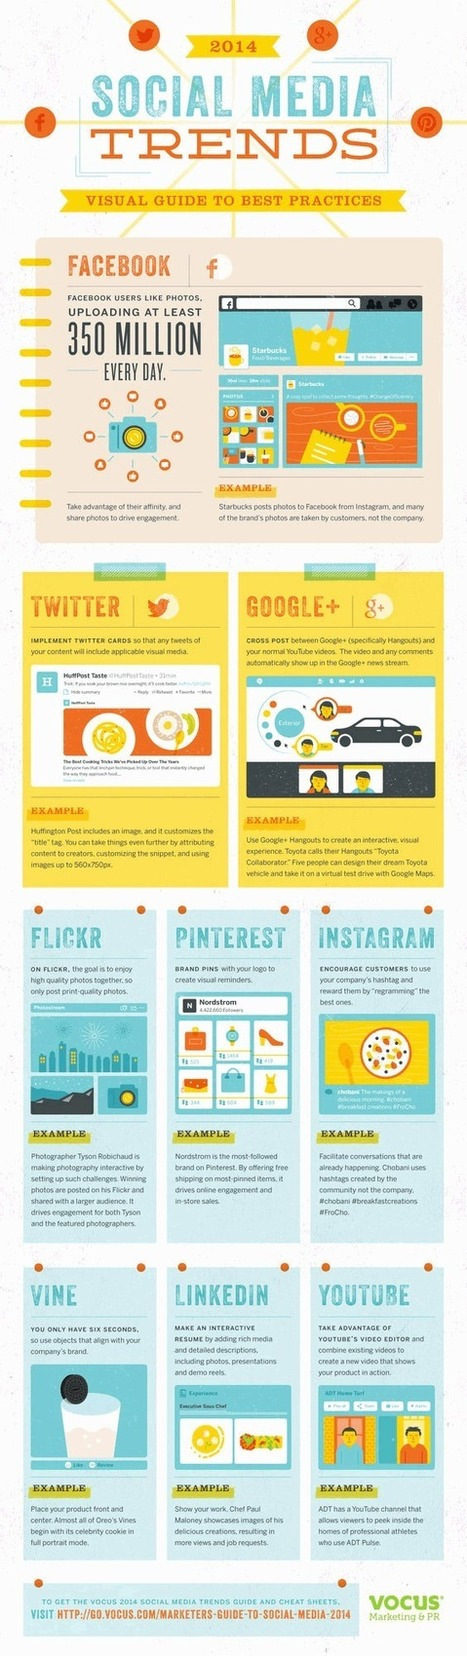 Social Media Marketing Tips 2014: A visual guide to best practices on Facebook, Twitter, Google+ and more | E-Learning Methodology | Scoop.it